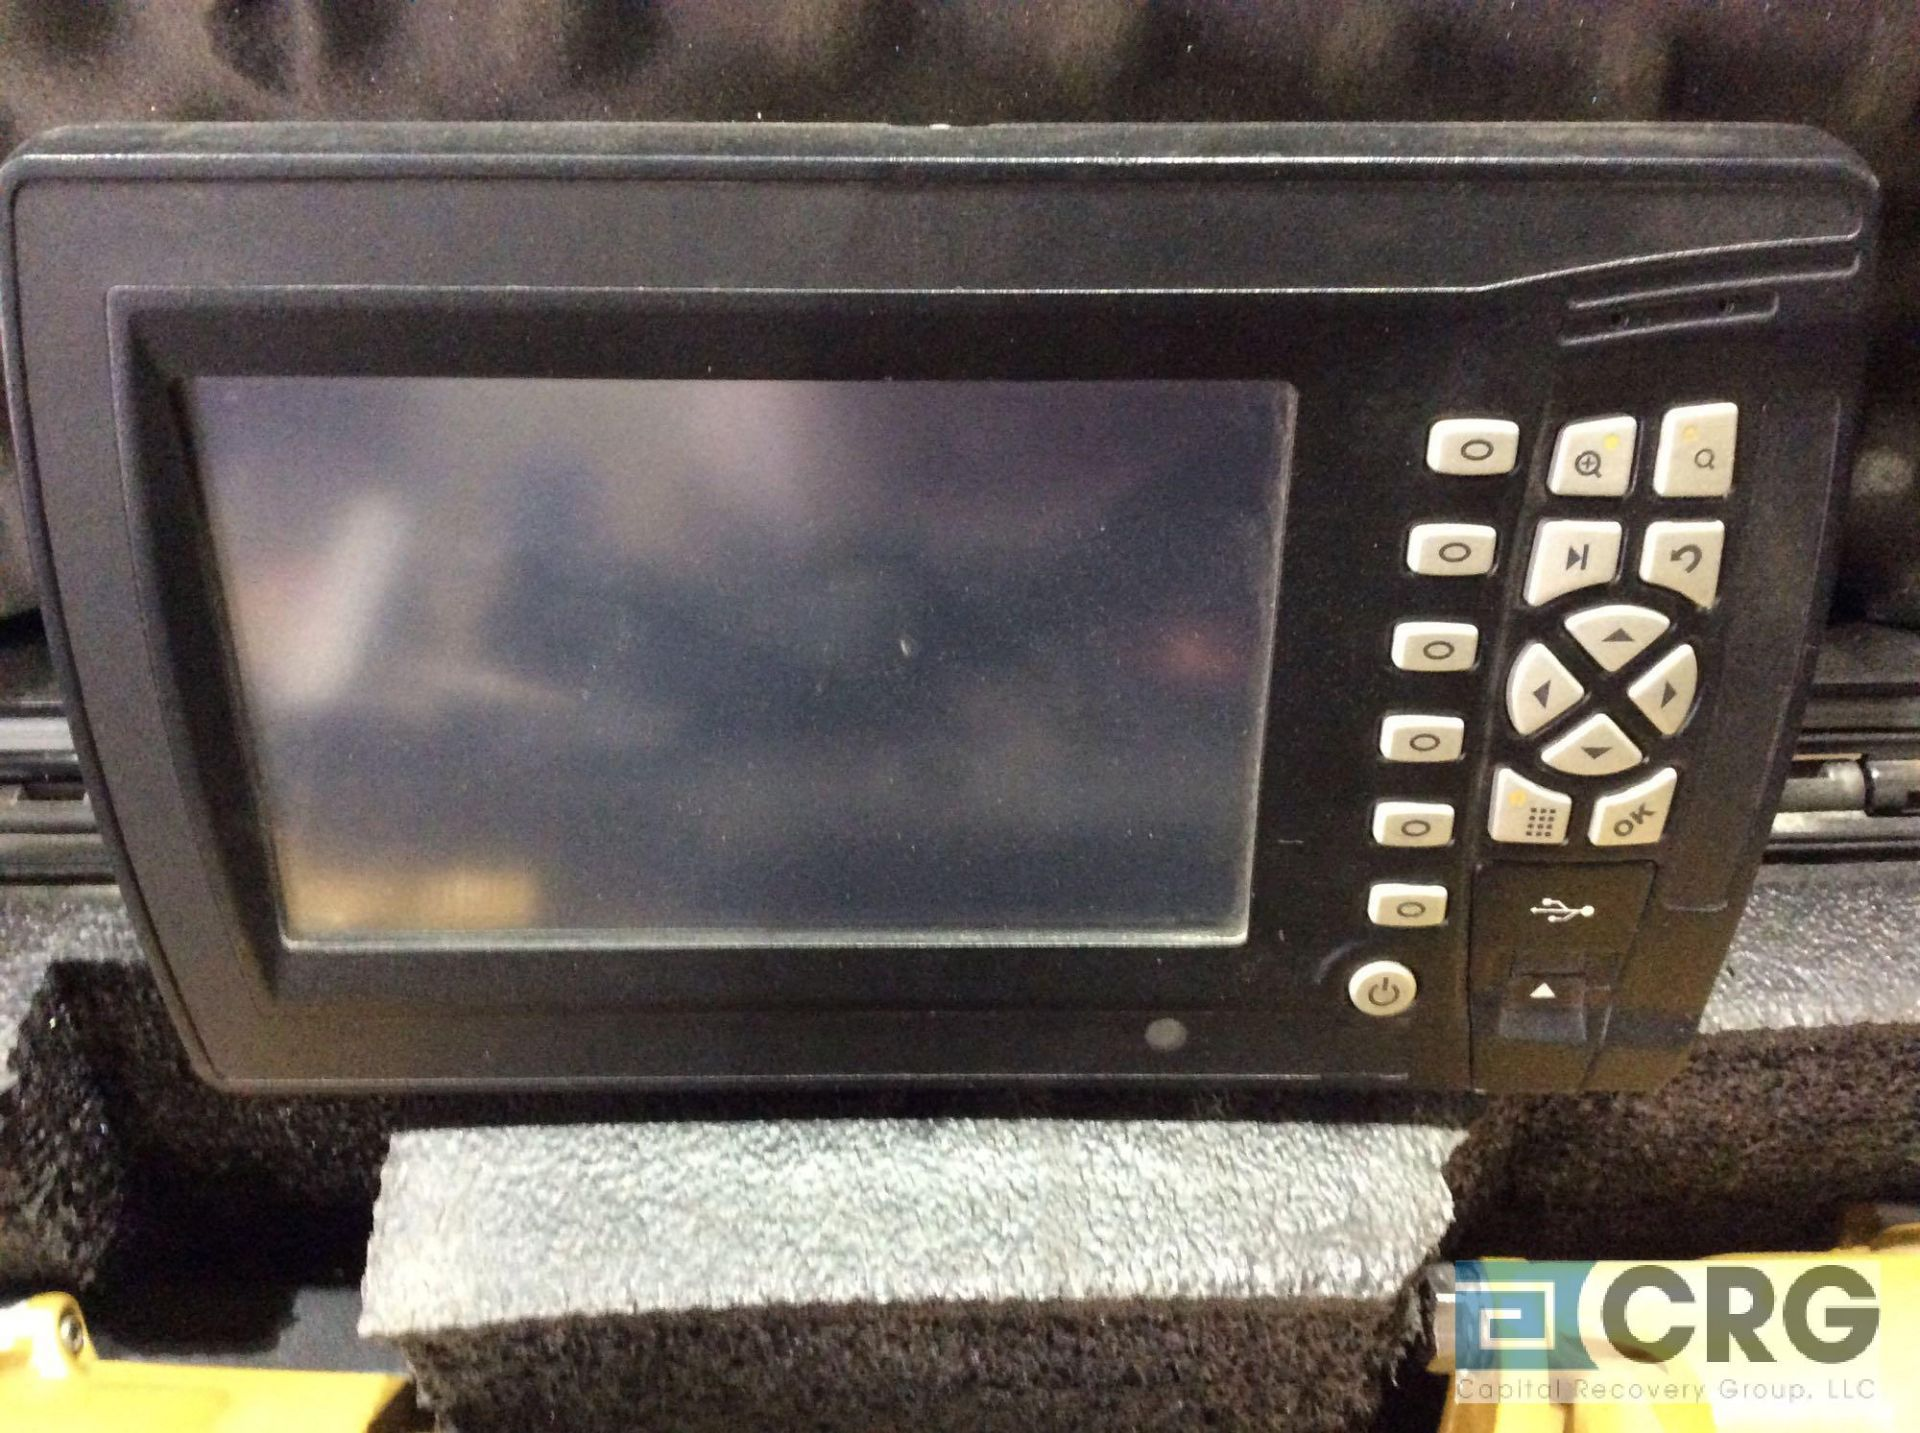 Lot 182 - Trimble GPS (2) MS 992 GNSS receivers with digital display mn CB460 with case and bulldozer software